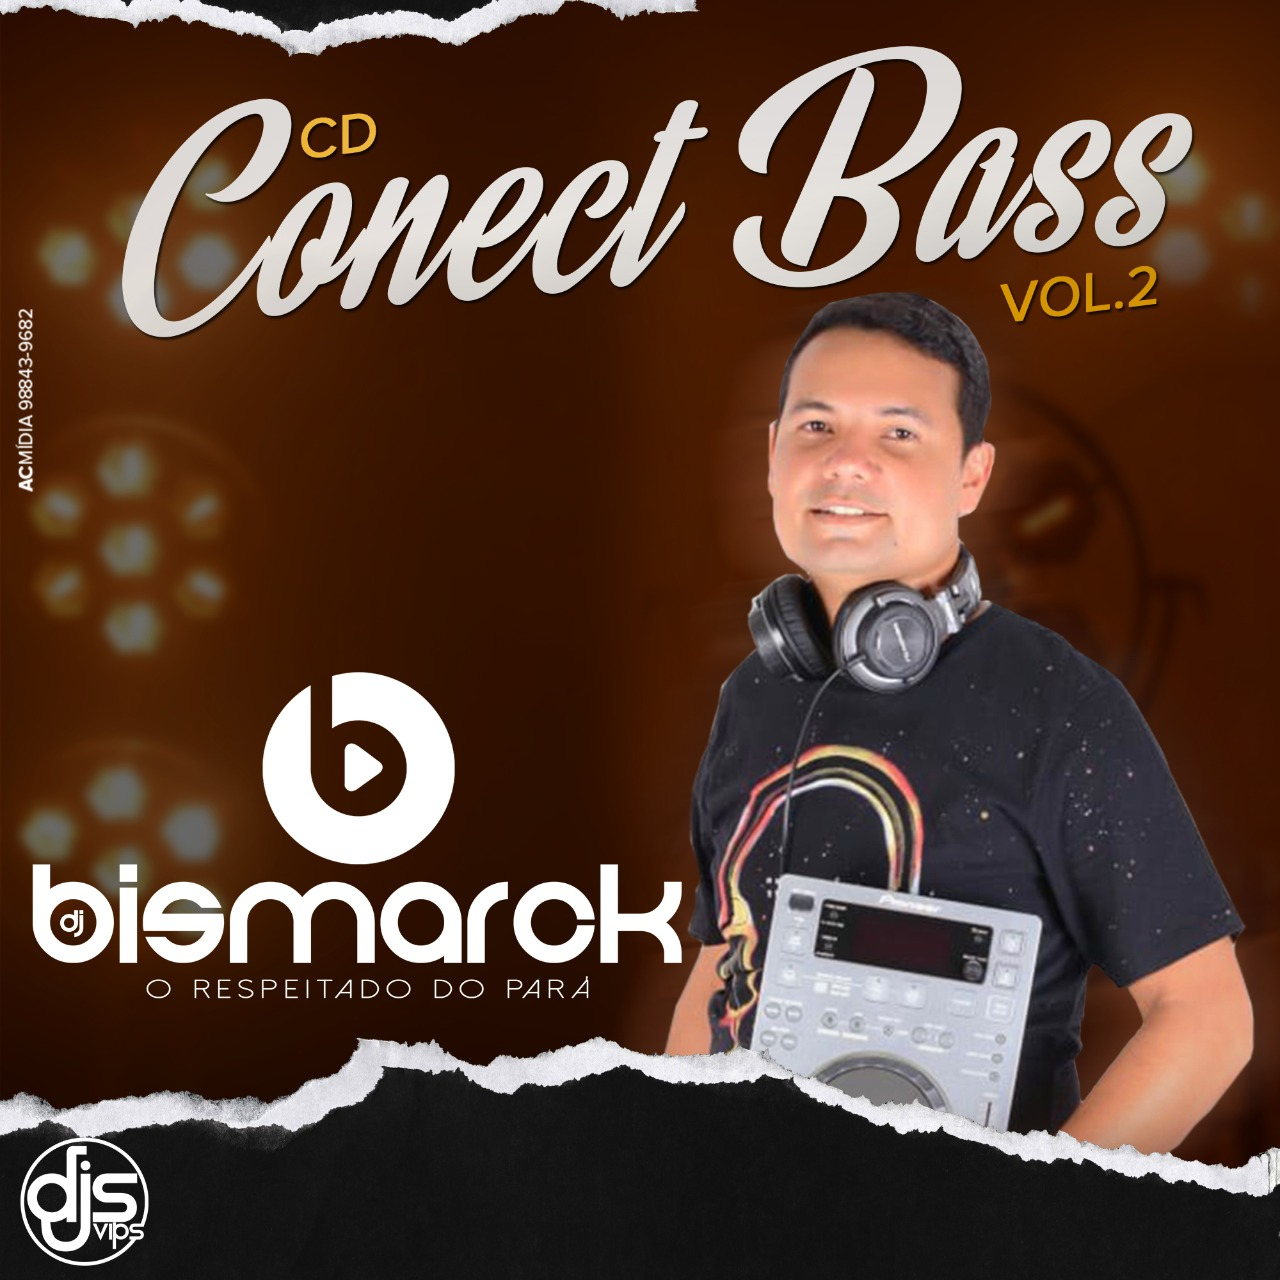 CD CONECT BASS VOL 2- DJ BISMARCK